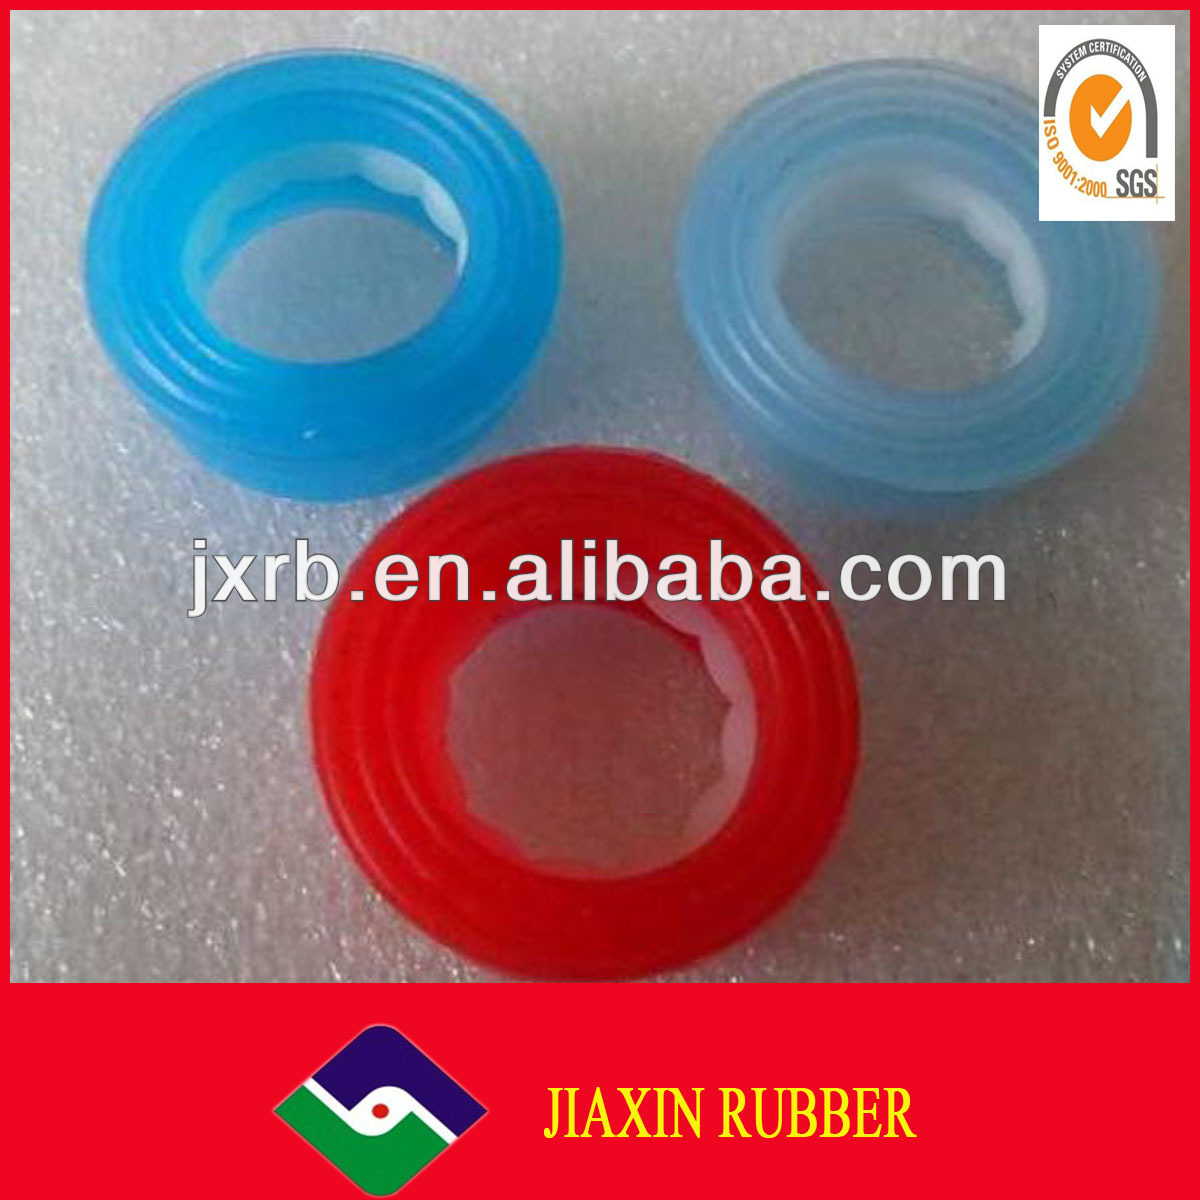 Pipe Silicone Rubber Gasket /rubber gasket for bottle stopper